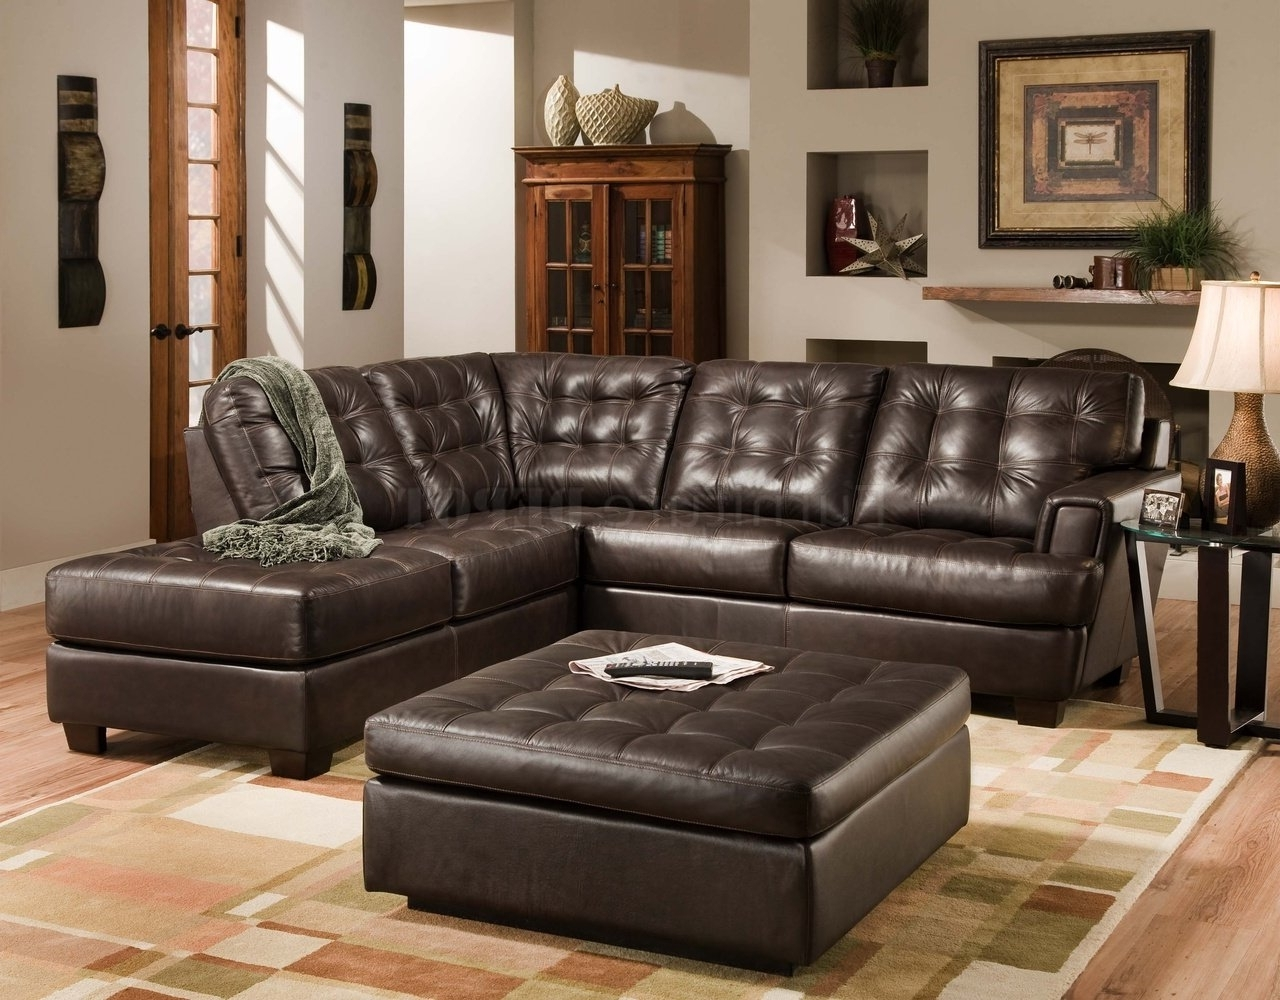 Small Leather Sectionals With Chaise Pertaining To Well Known Double Chaise Loveseat Leather Loveseat With Chaise Large (View 11 of 15)